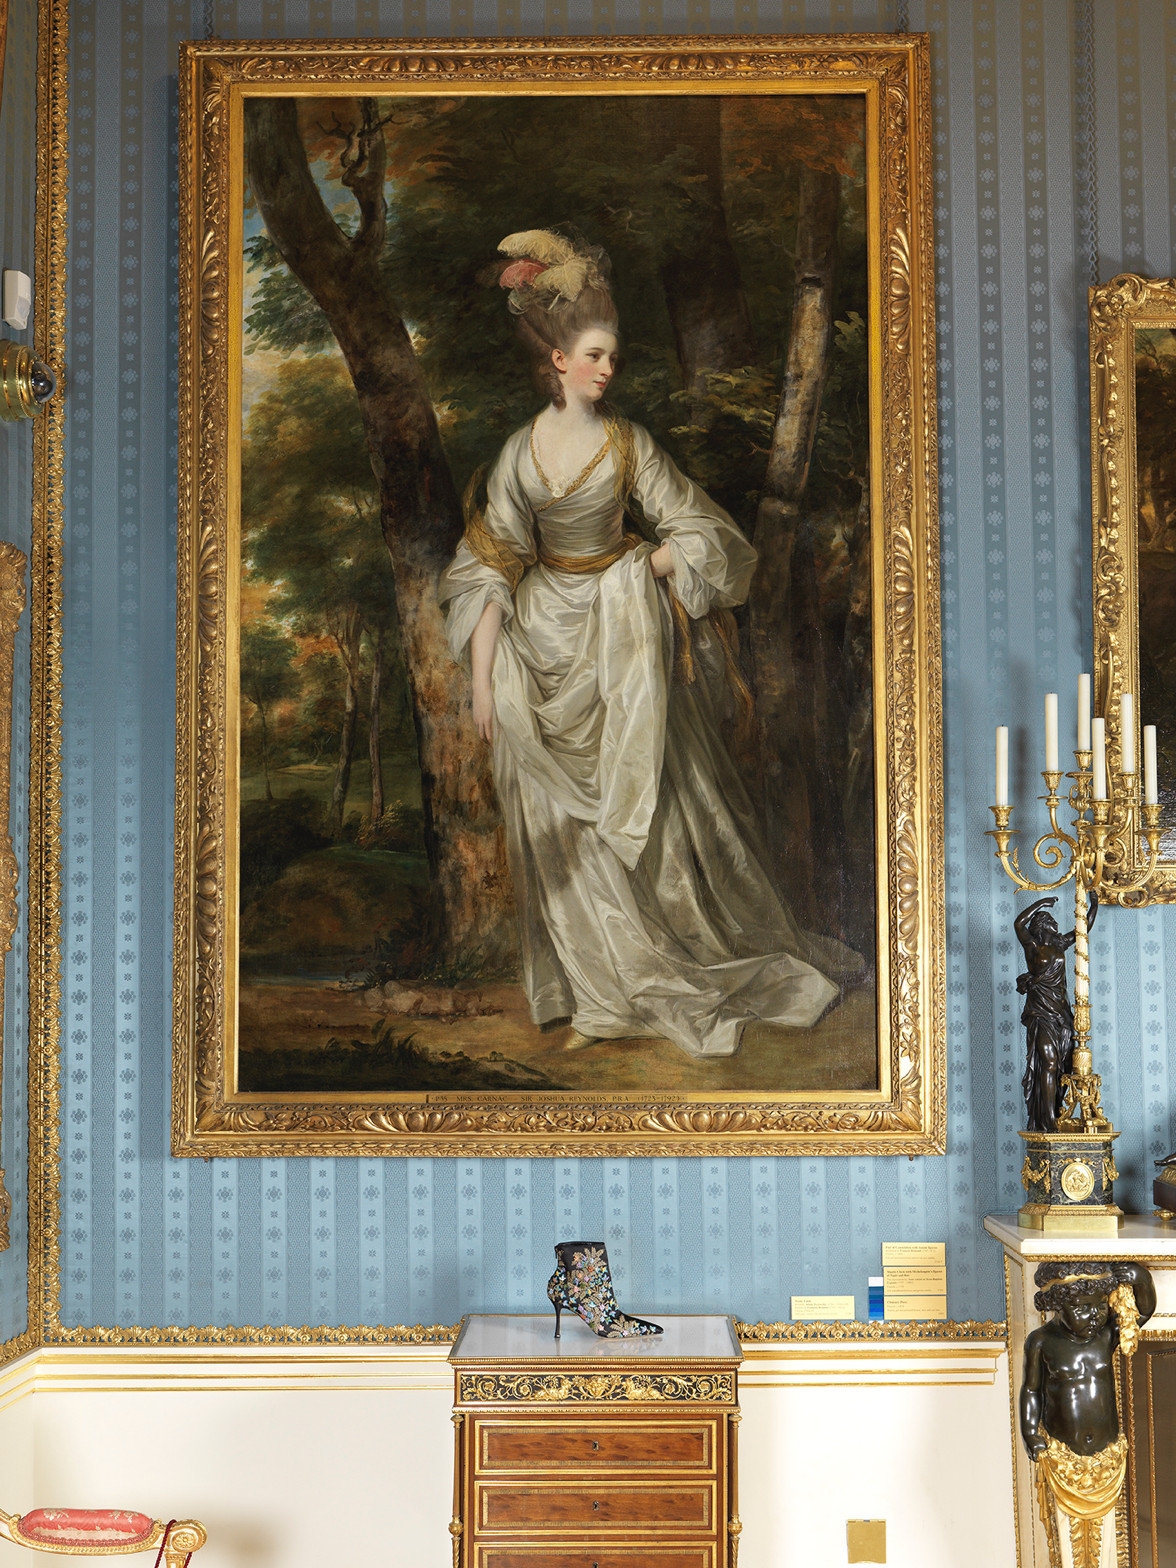 The Lepanto boot is positioned in front of Joshua Reynold's painting of Mrs Elizabeth Carnac.